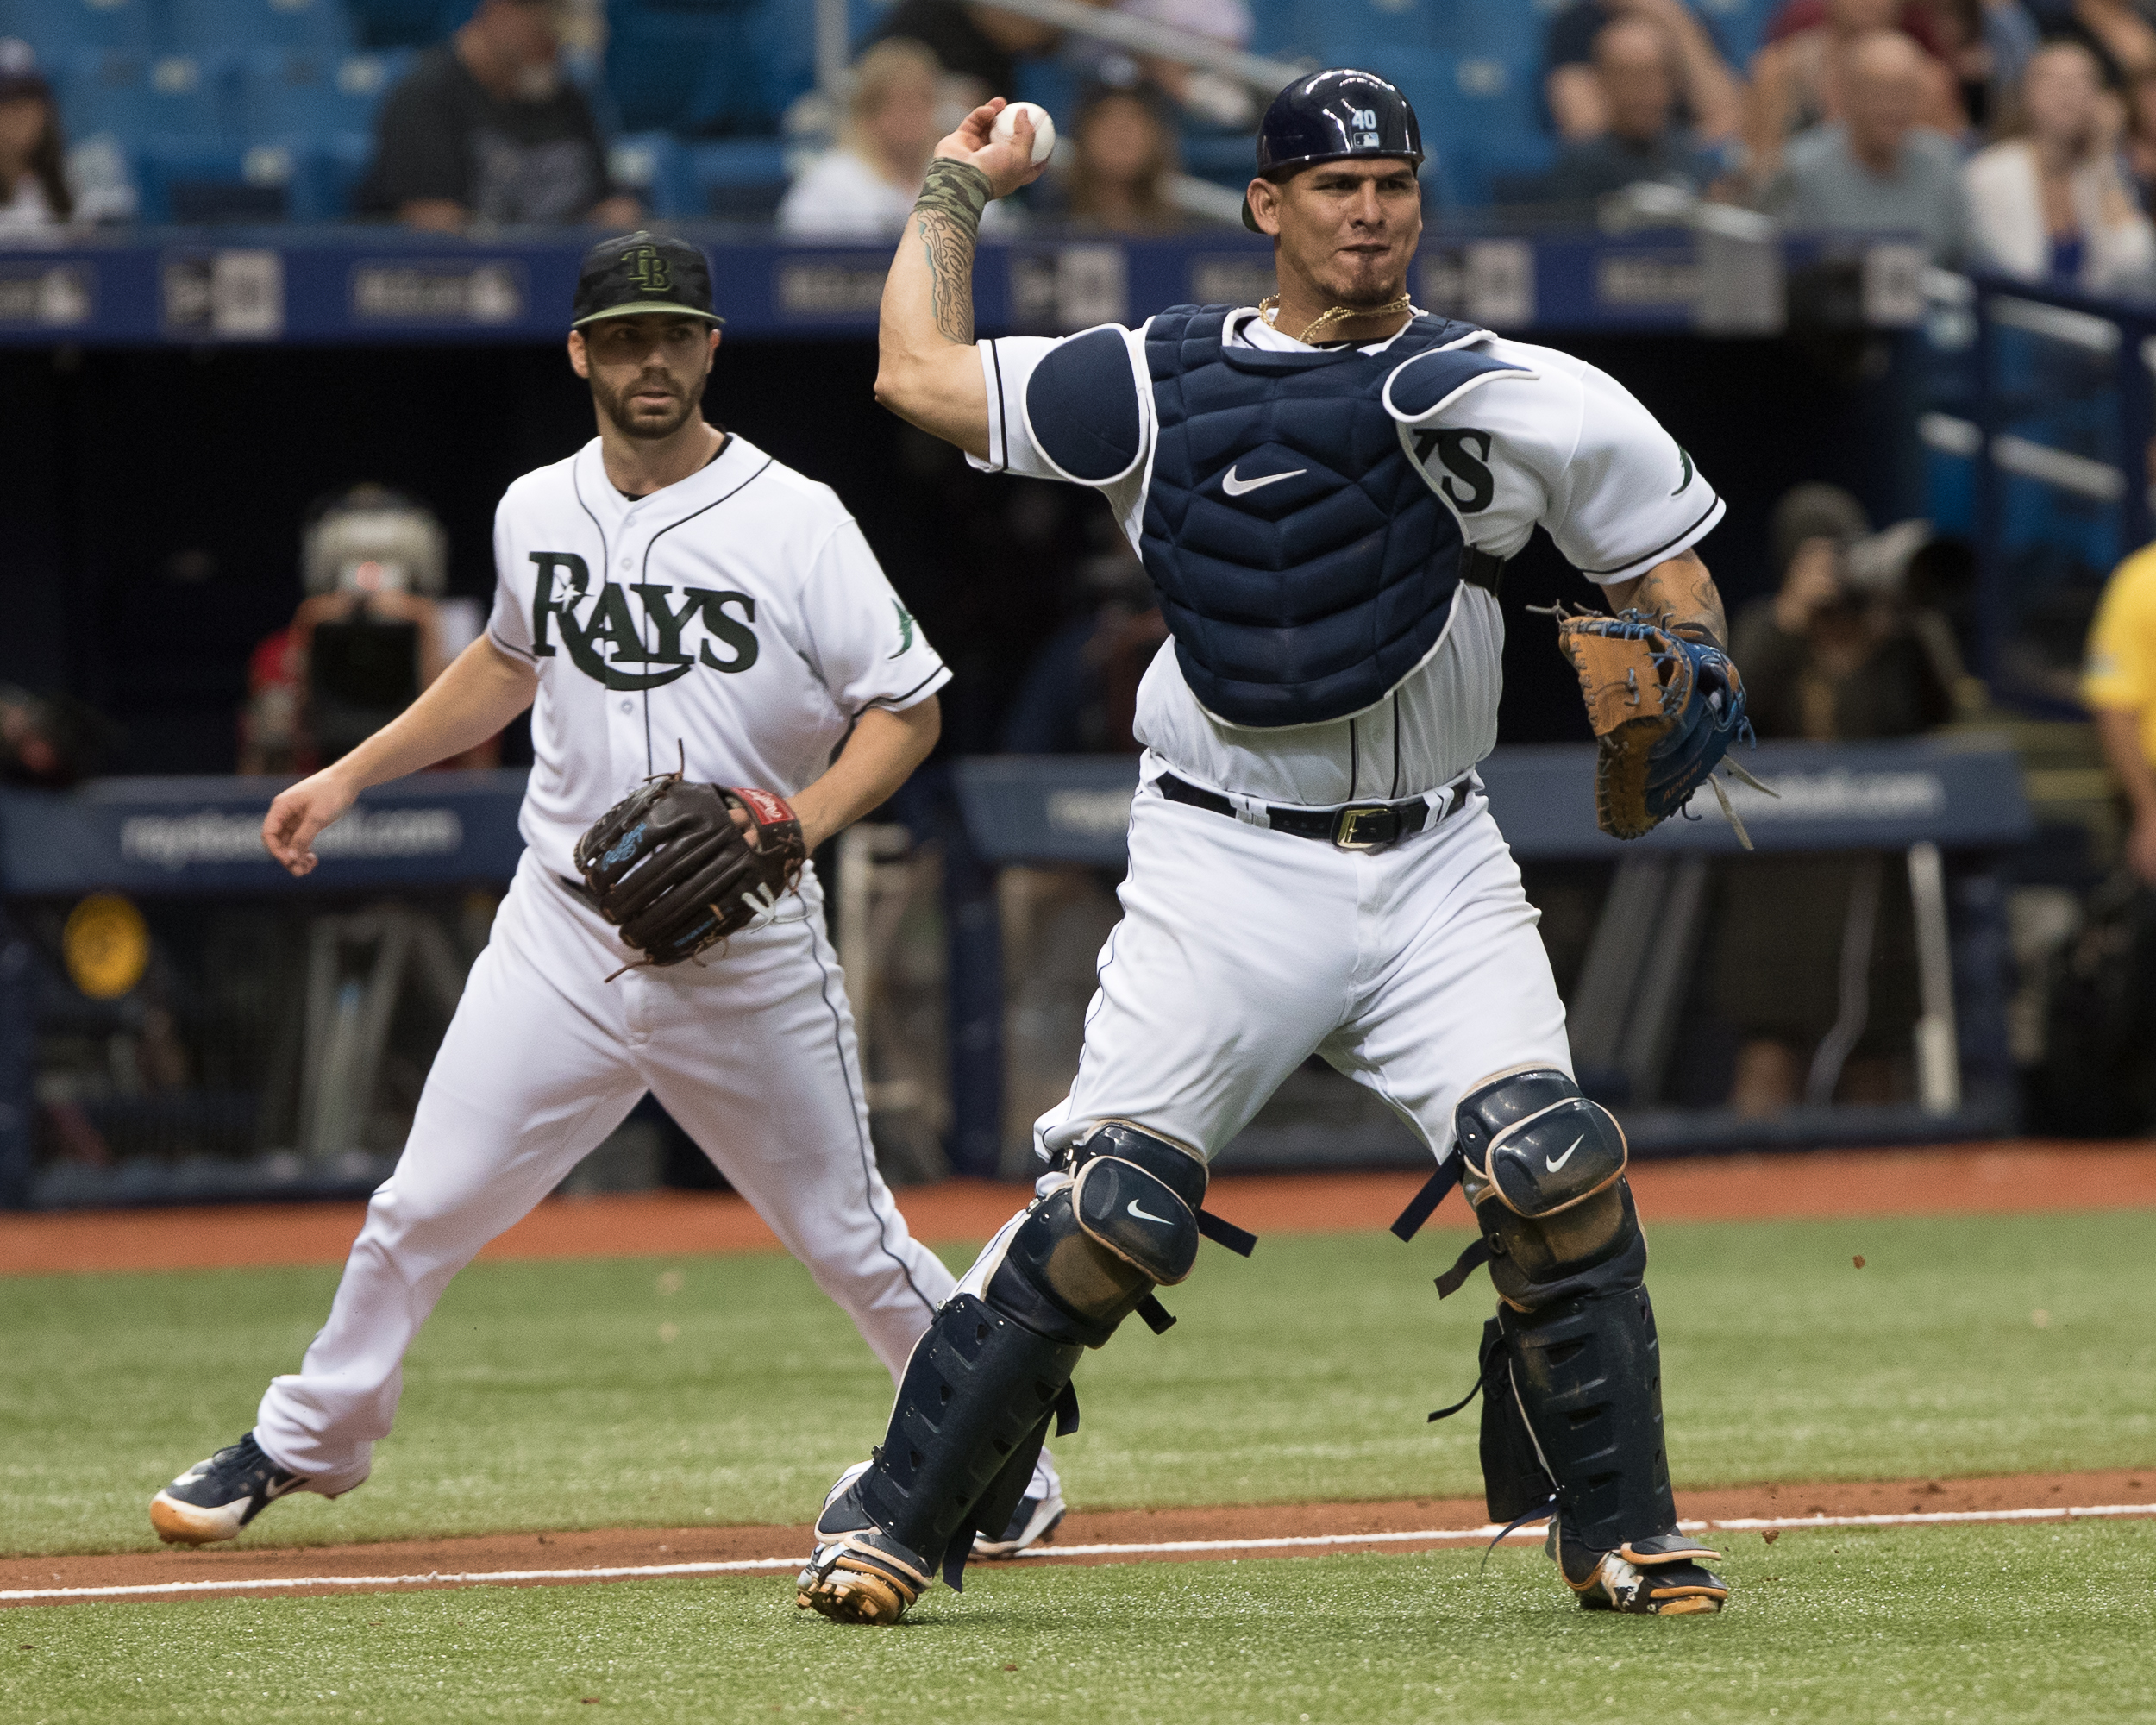 Wilson Ramos gets the out in Rays' win/STEVEN MUNCIE